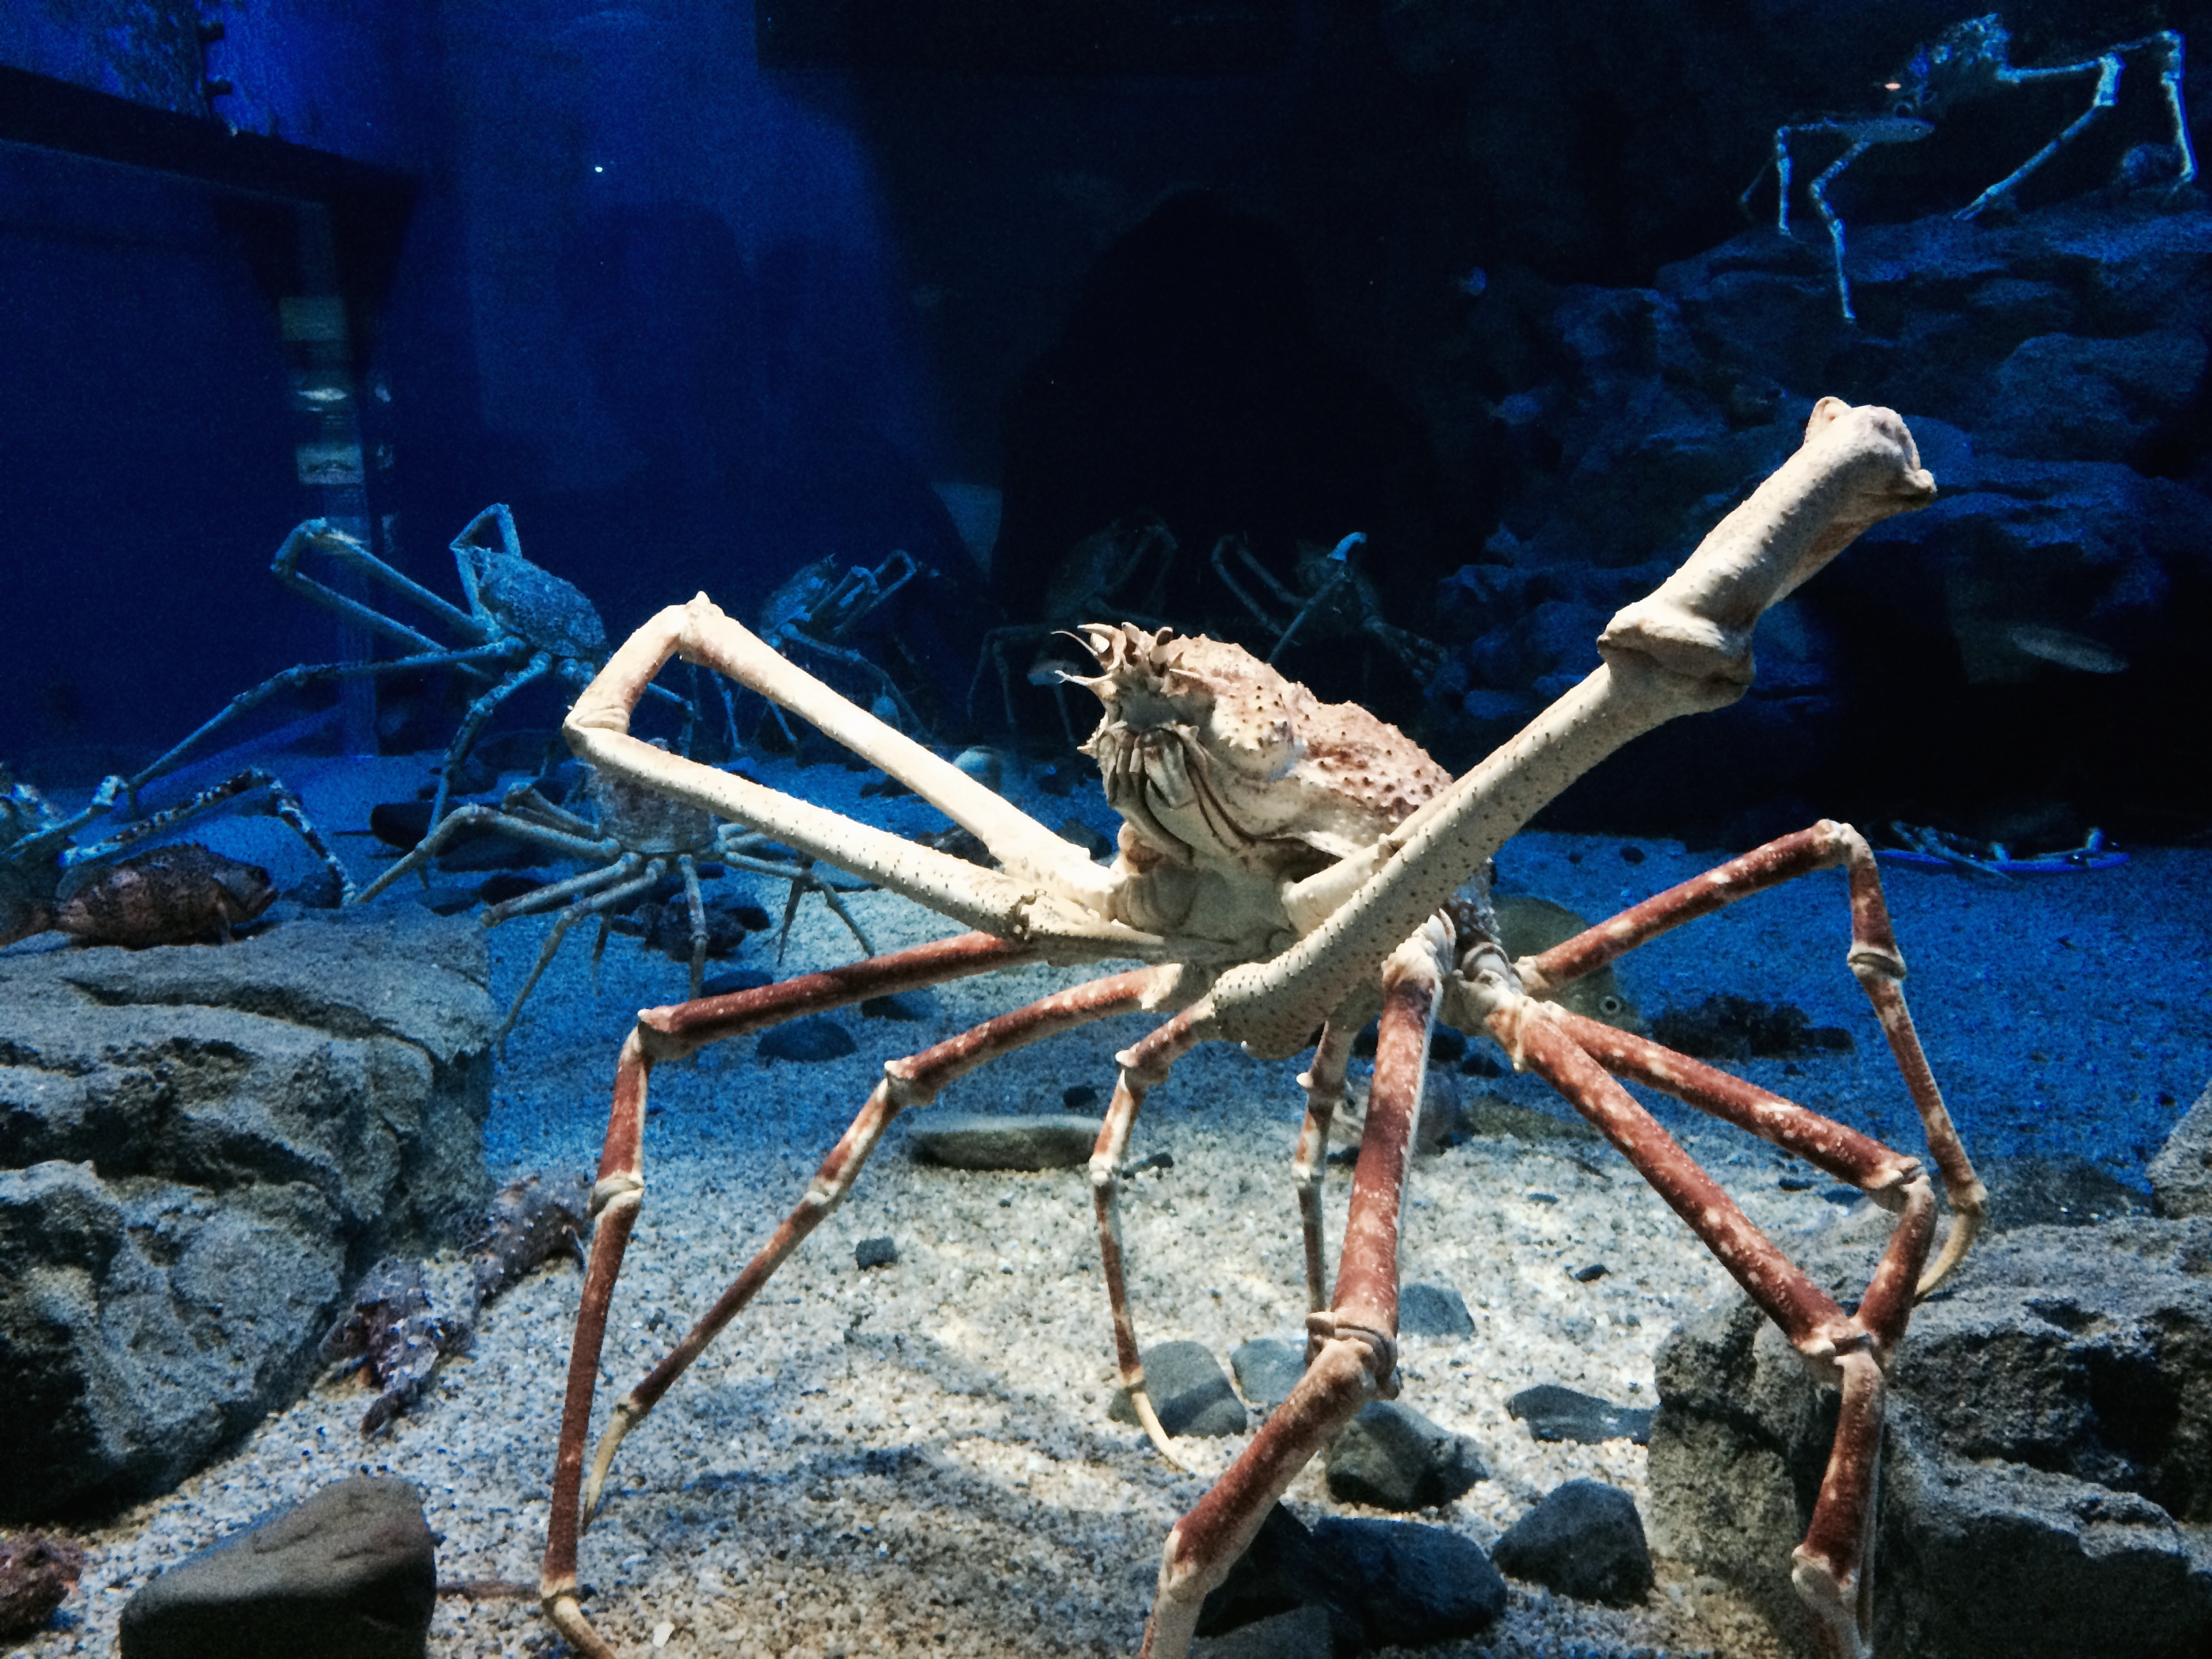 worlds largest crustacean giant spider crab essay The japanese spider crab is a gigantic marine crab and one of the world's largest arthropods, holding the record for largest leg span these gigantic crustaceans are not active hunters, but instead crawl along and pick slow moving organisms or any dead and decaying matter along the ocean floor.